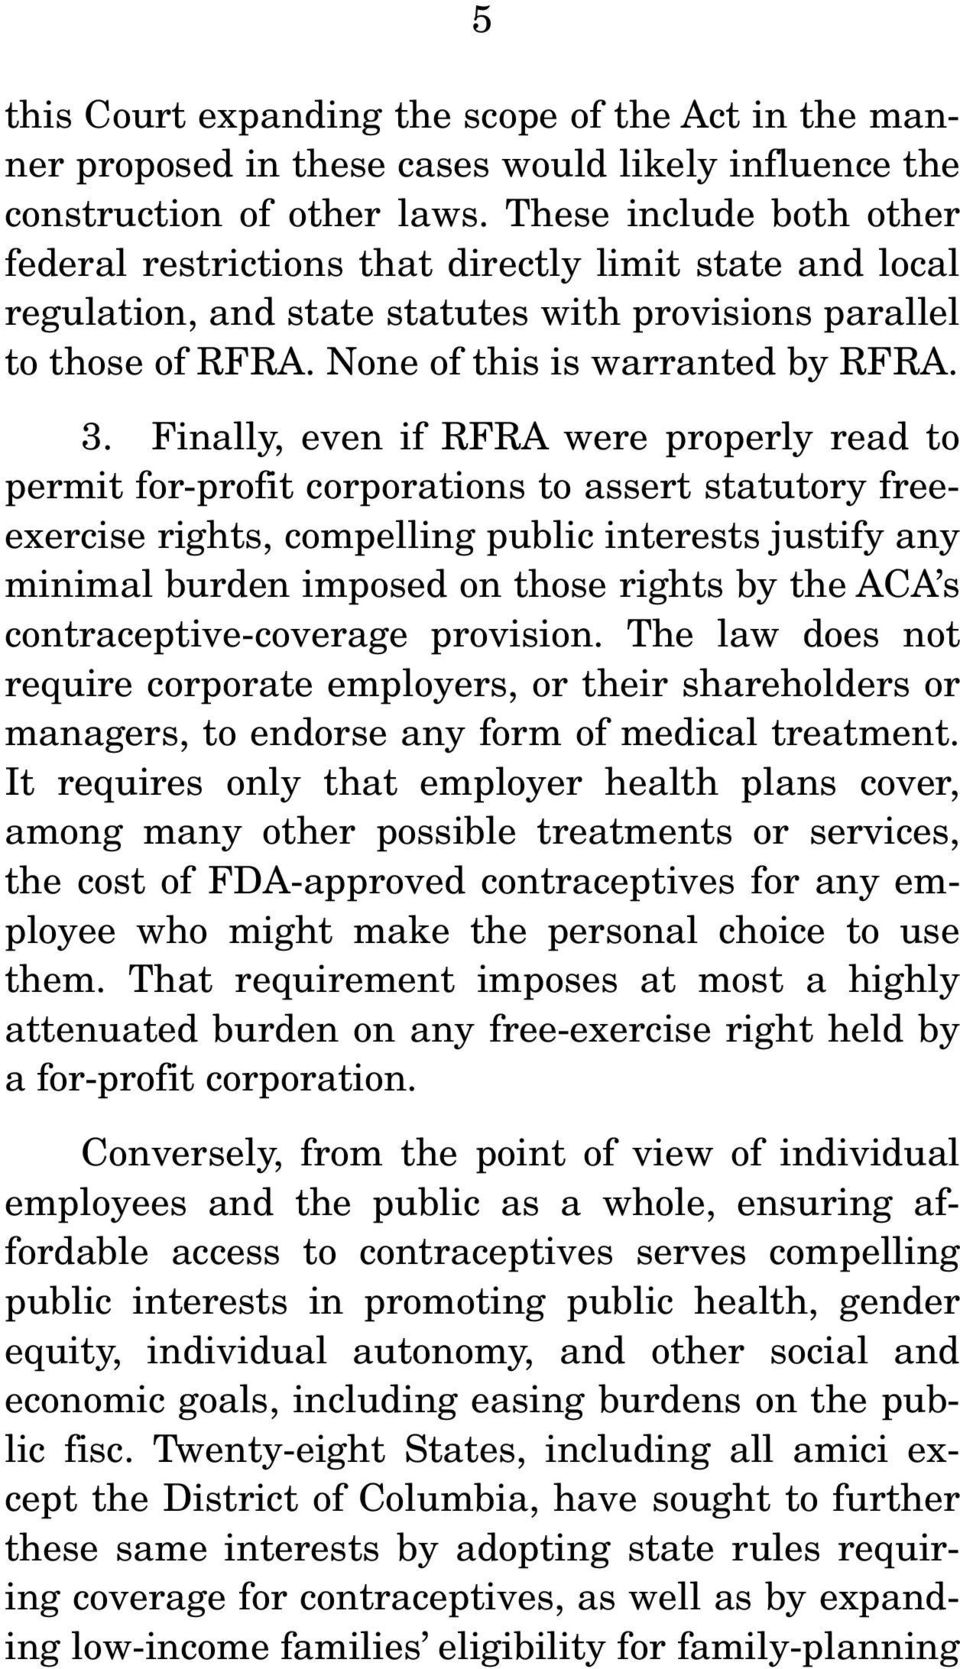 Finally, even if RFRA were properly read to permit for-profit corporations to assert statutory freeexercise rights, compelling public interests justify any minimal burden imposed on those rights by